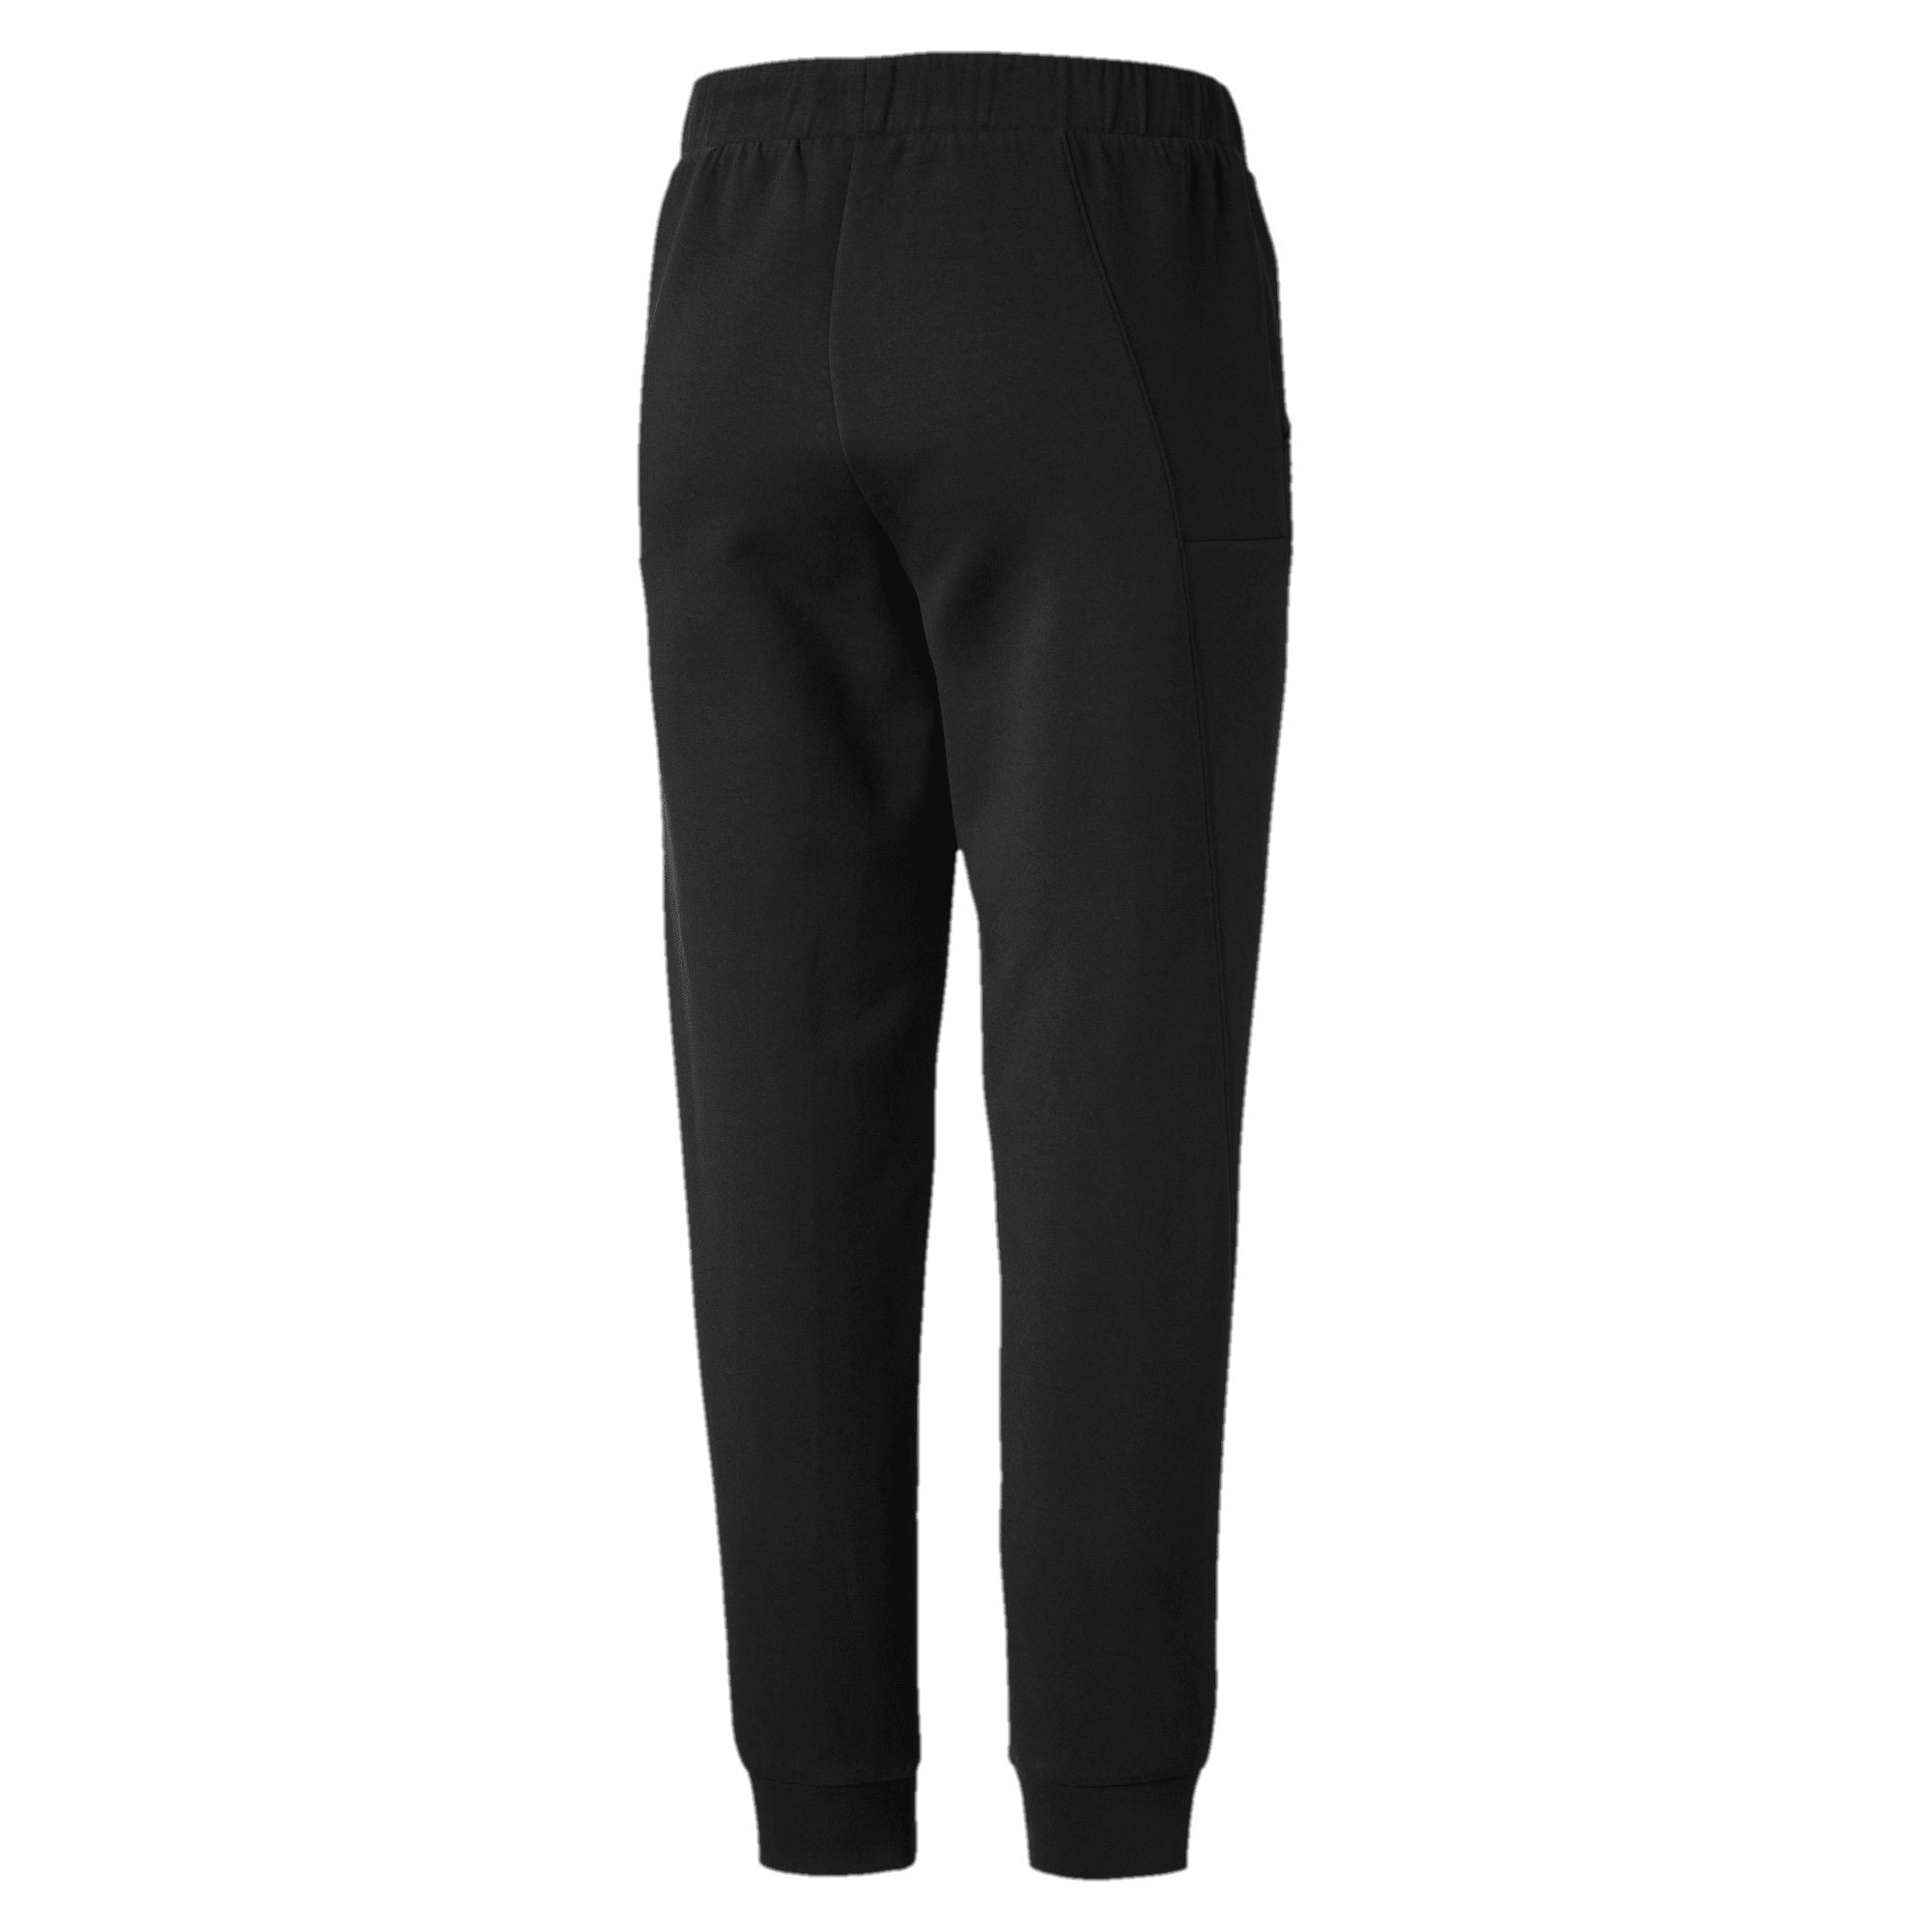 Thumbnail 5 of Pantaloni della tuta Ferrari donna, Puma Black, medium